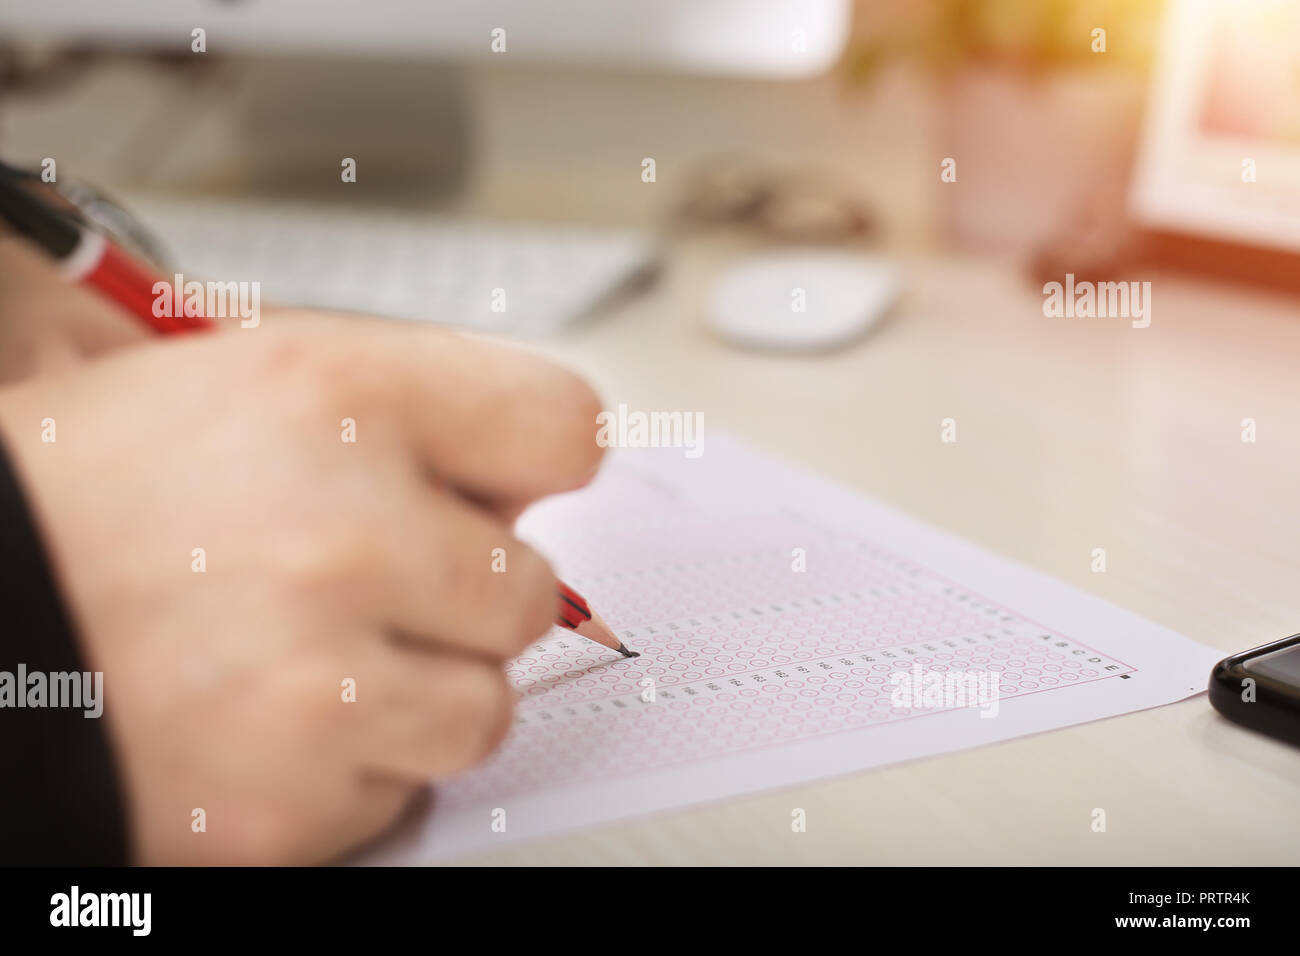 Picture of omr sheet with pencil. - Stock Image